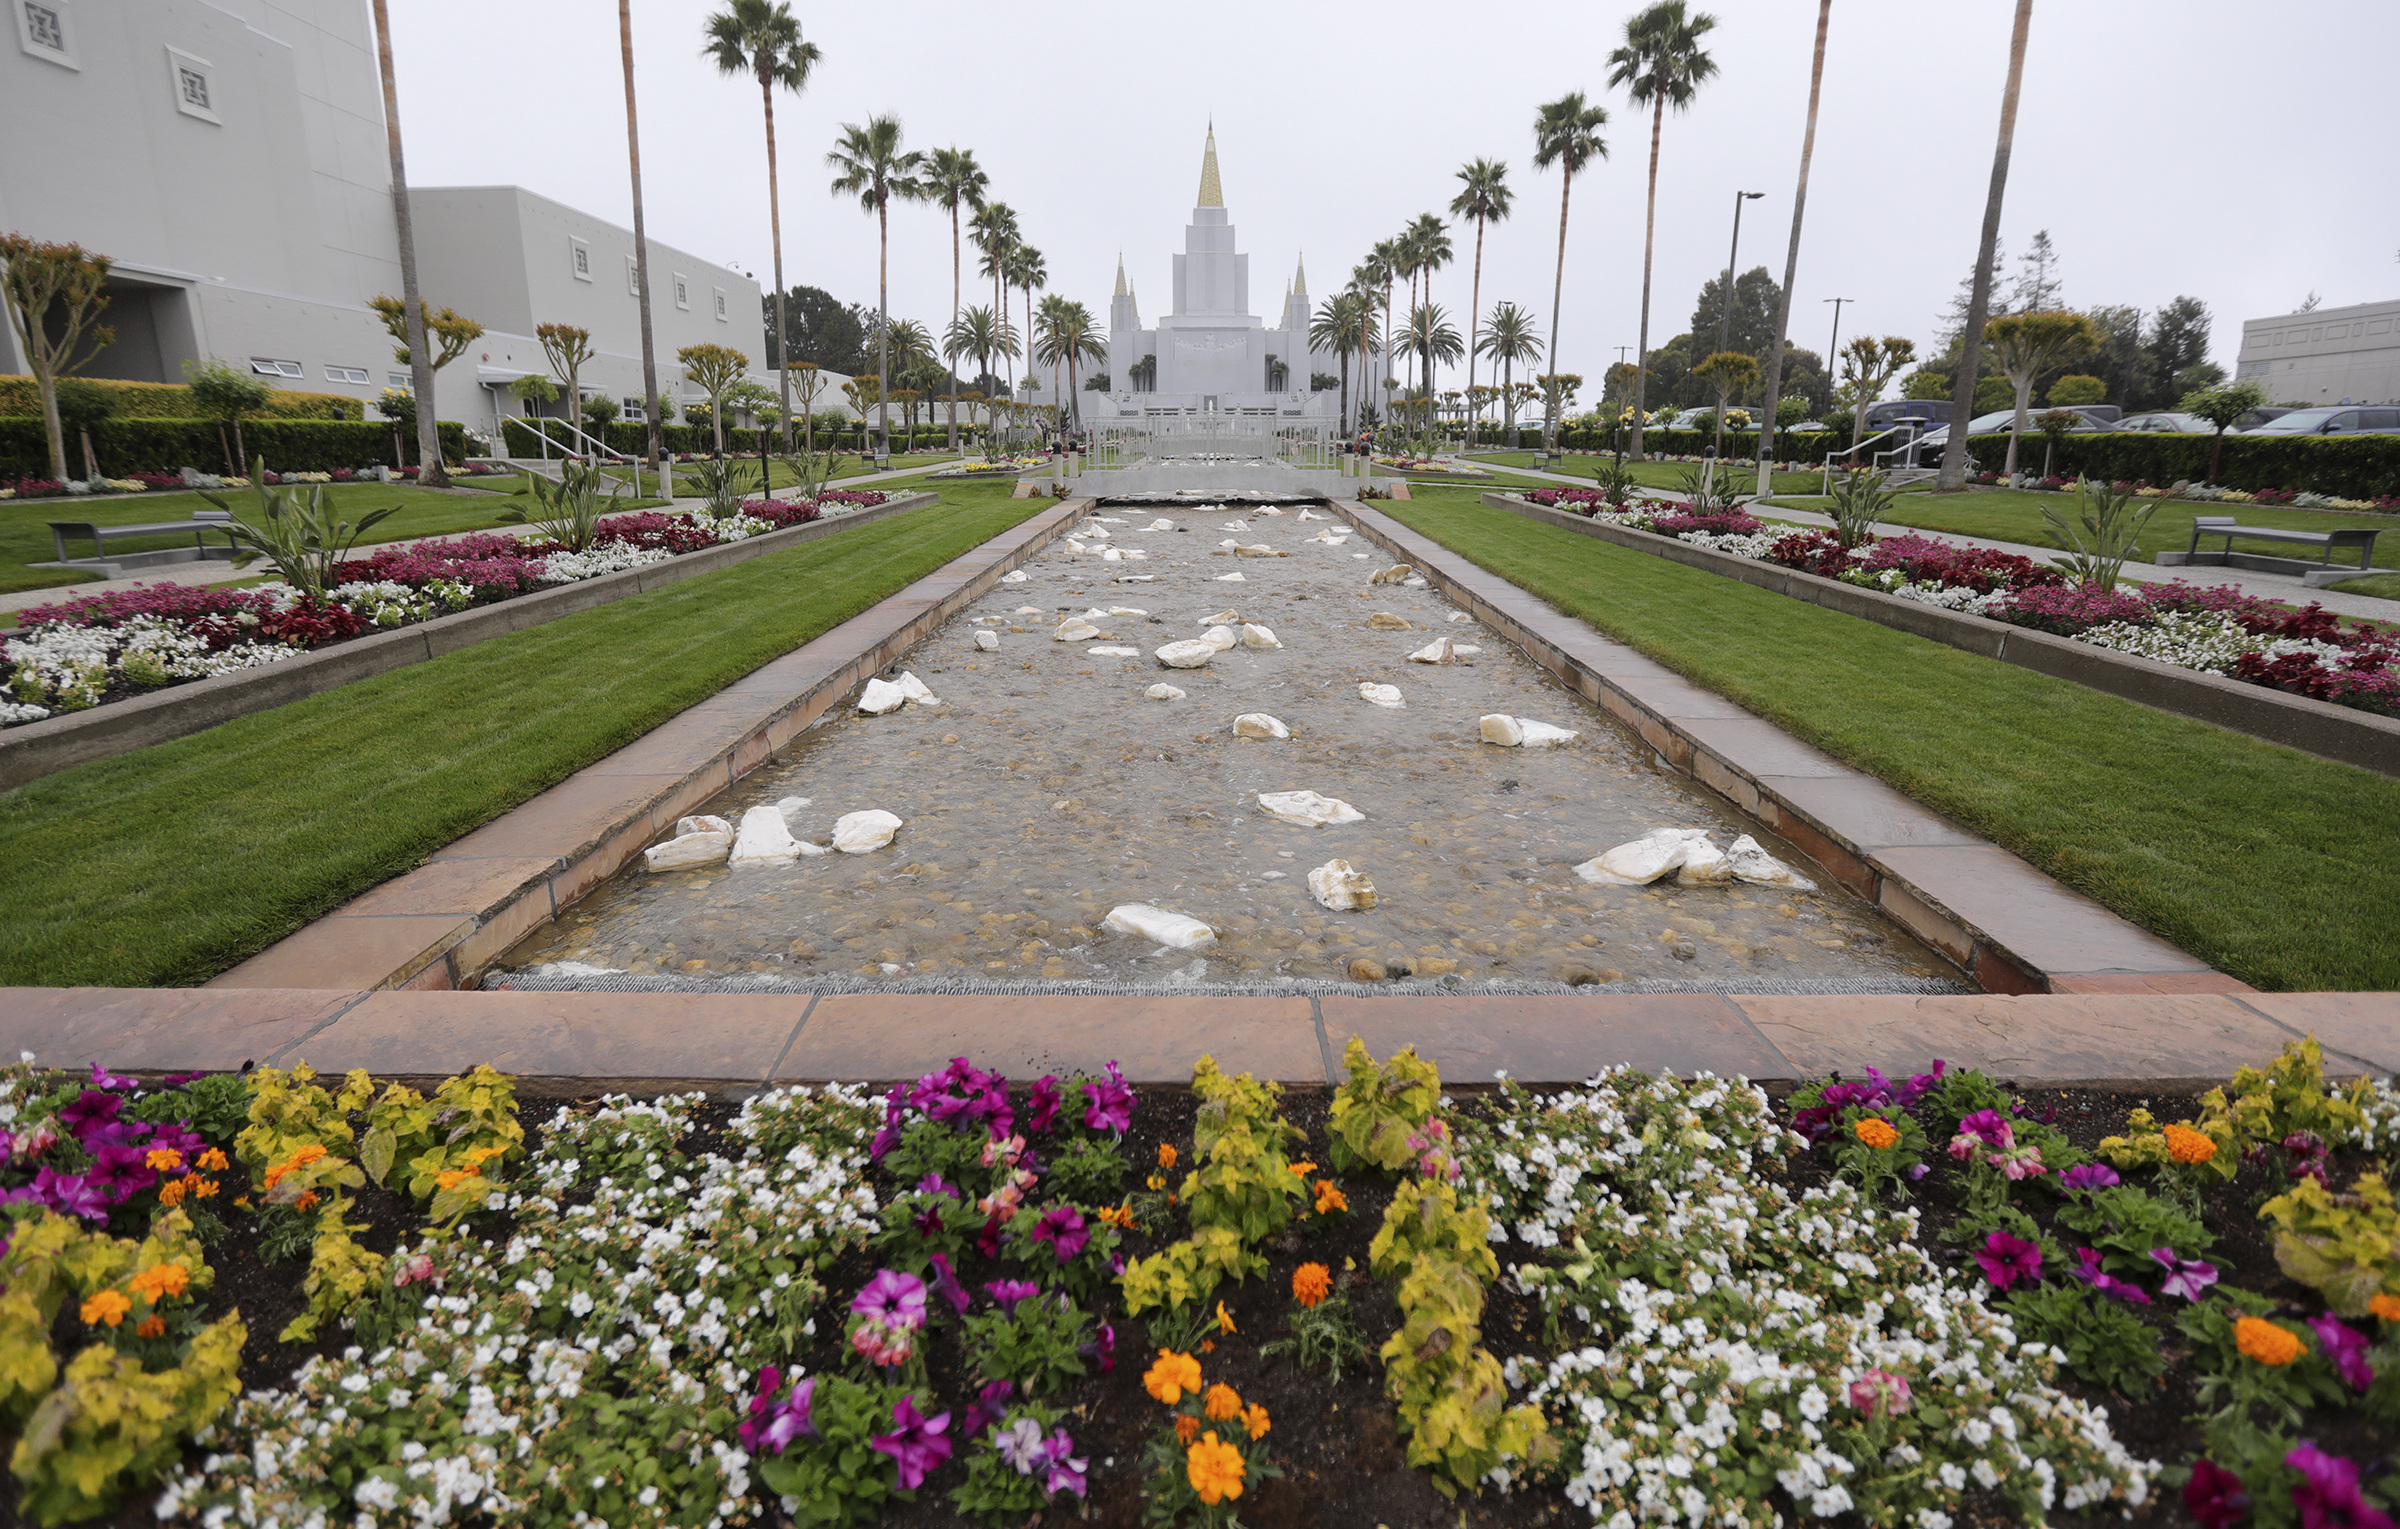 The newly renovated Oakland California Temple, of The Church of Jesus Christ of Latter-day Saints, in Oakland, Calif., on Monday, May 6, 2019.